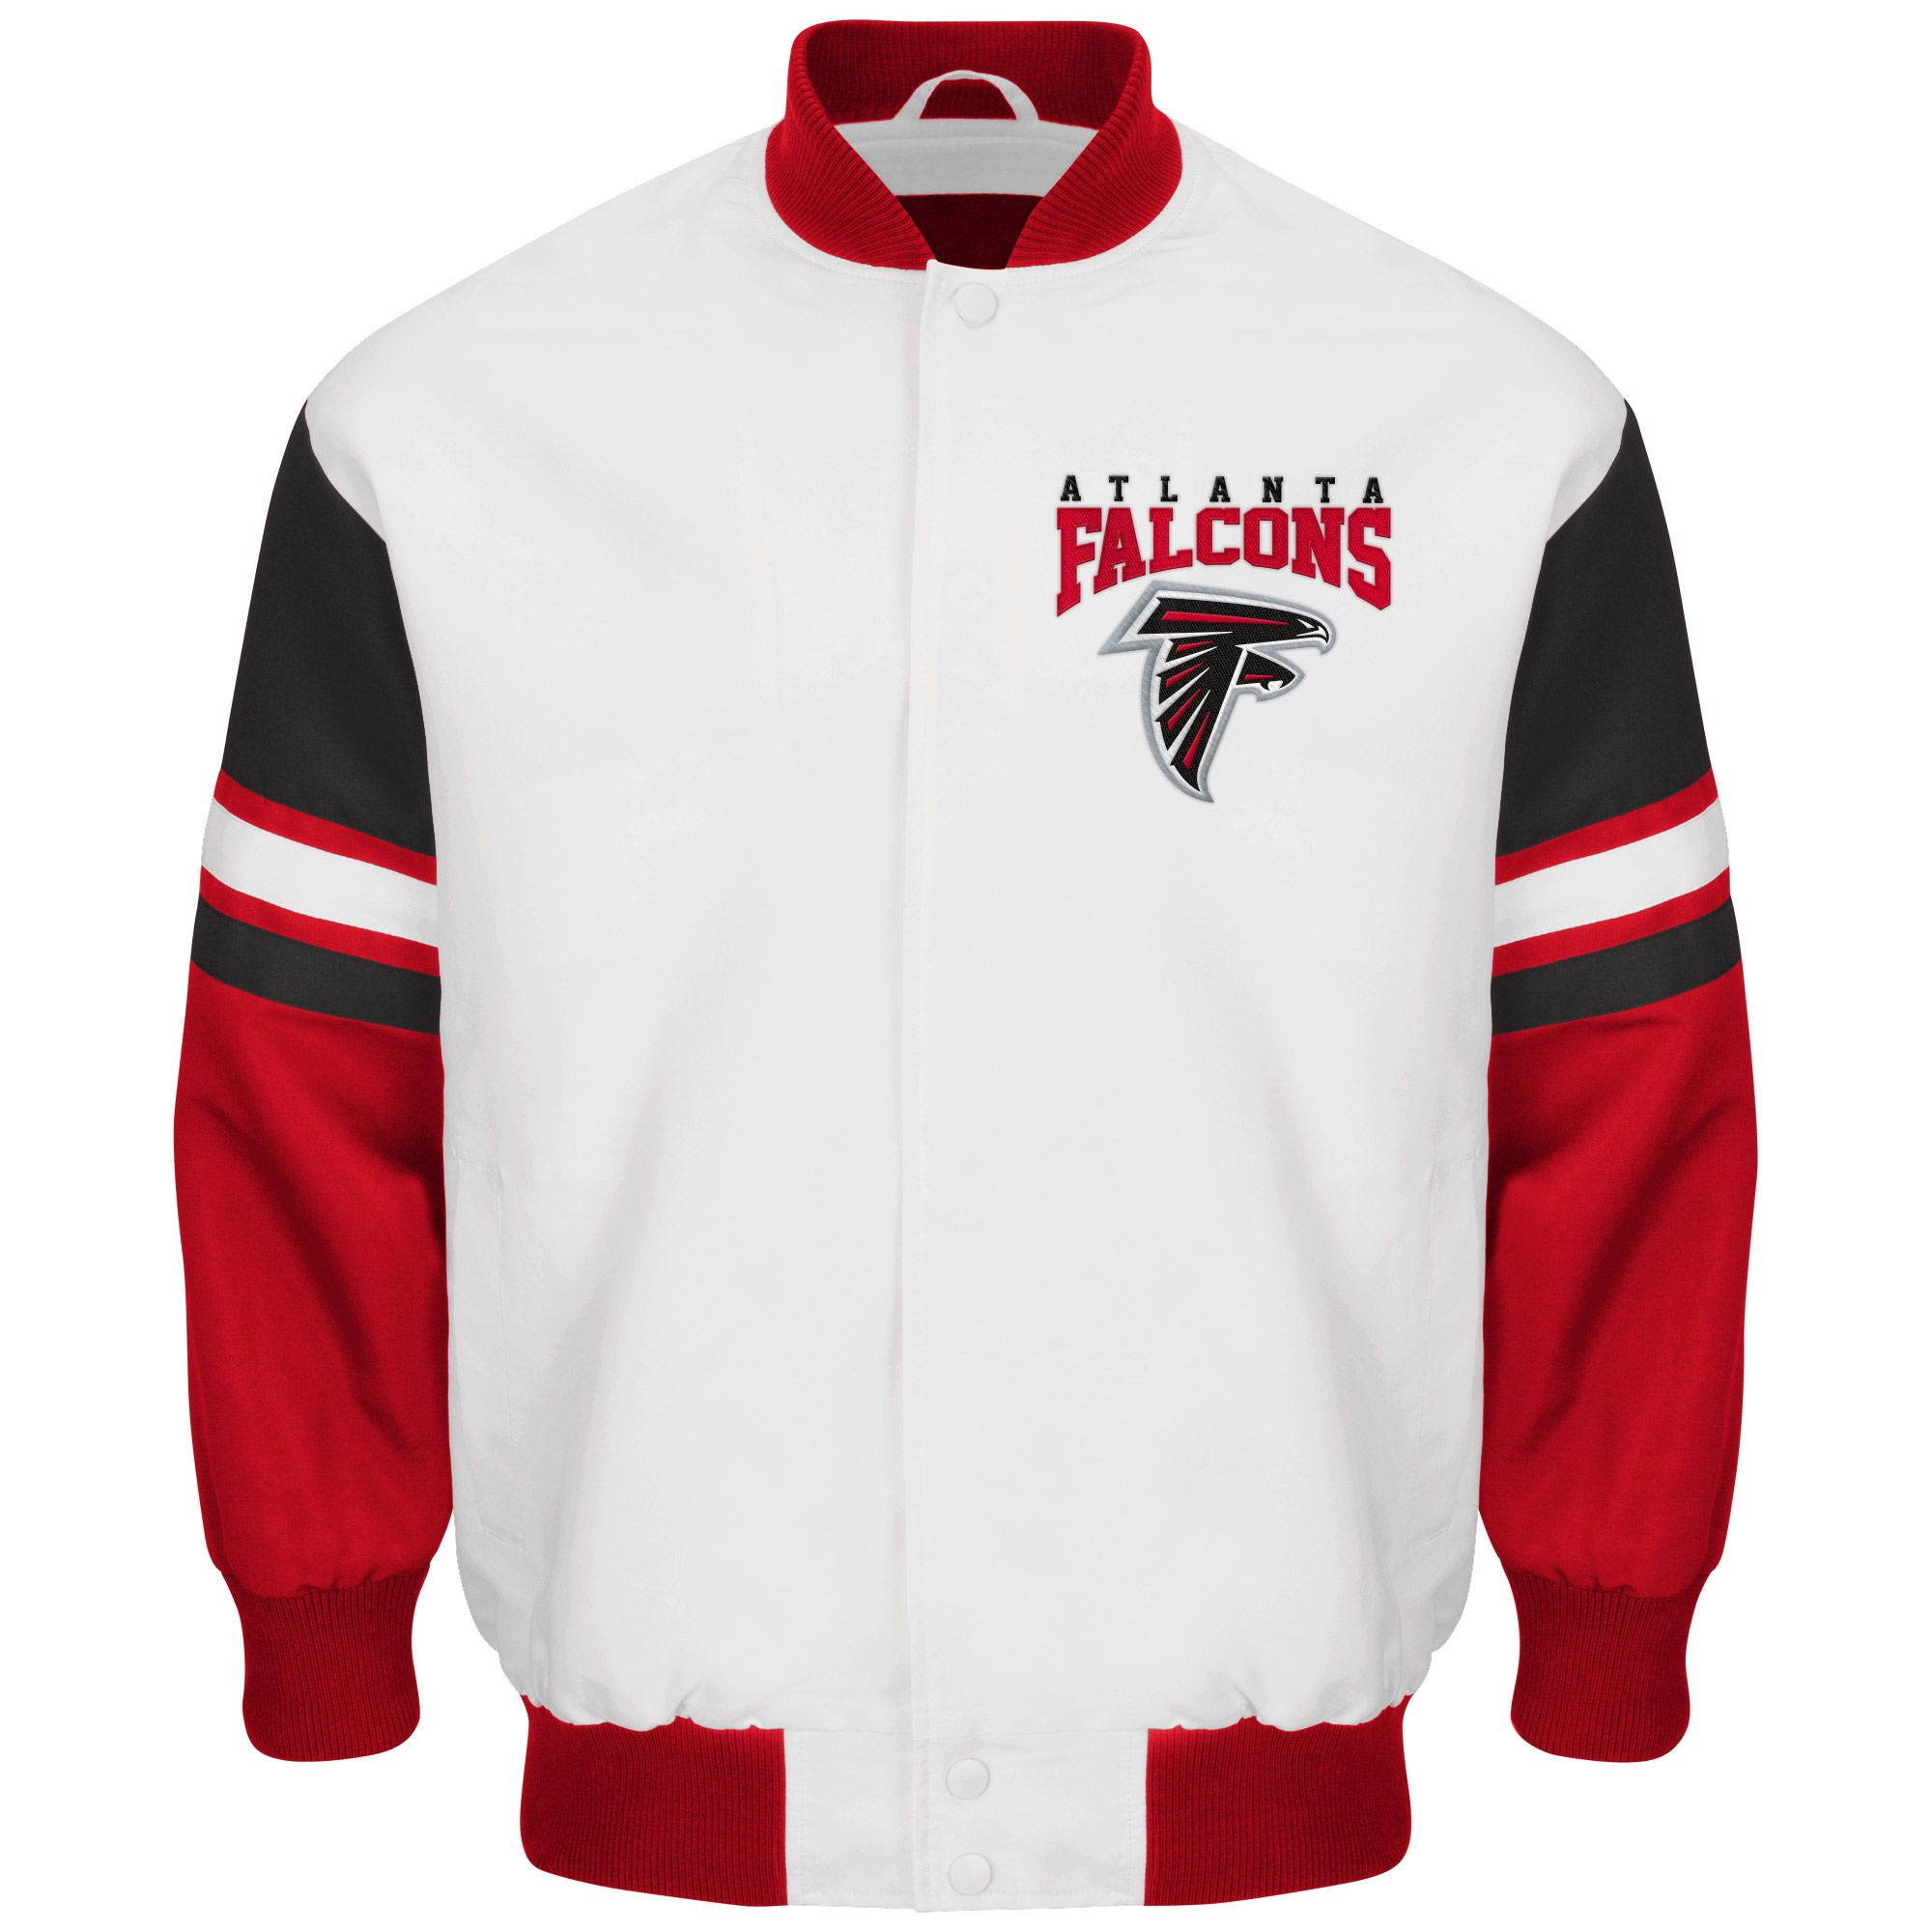 Nfl Atlanta Falcons G Iii Extreme Interceptor Sublimated Jacket White Carolina Panthers Jacket Carolina Panthers Carolina Panthers Football